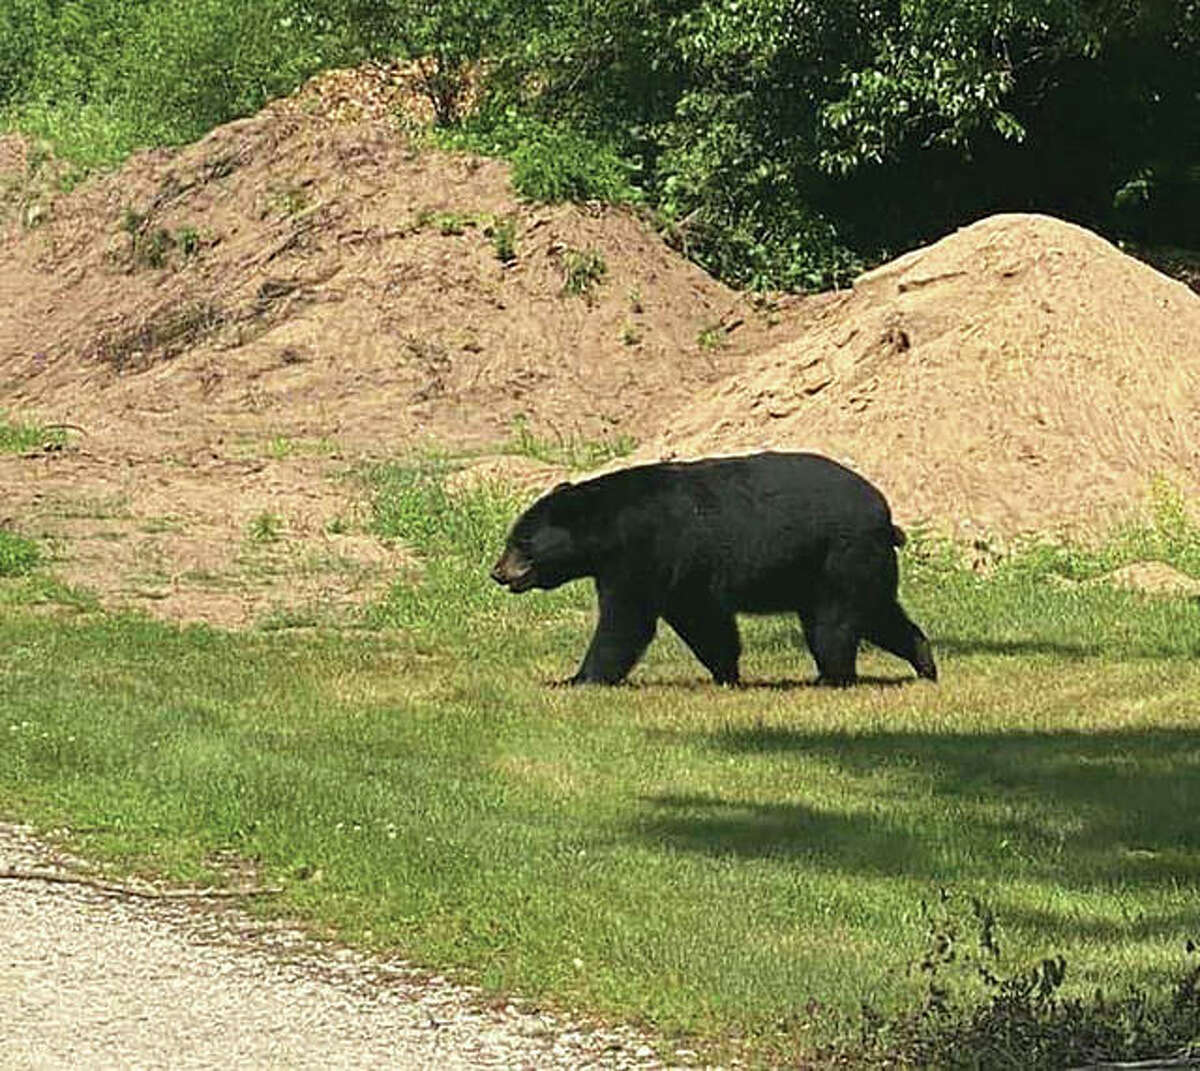 A black bear, similar to this one seen last year 90 miles north of the Riverbend, was reported in LaVista Park in Godfrey. Village officials said the Illinois Department of Natural Resources is investigating the site, and the village will release more information when it becomes available.